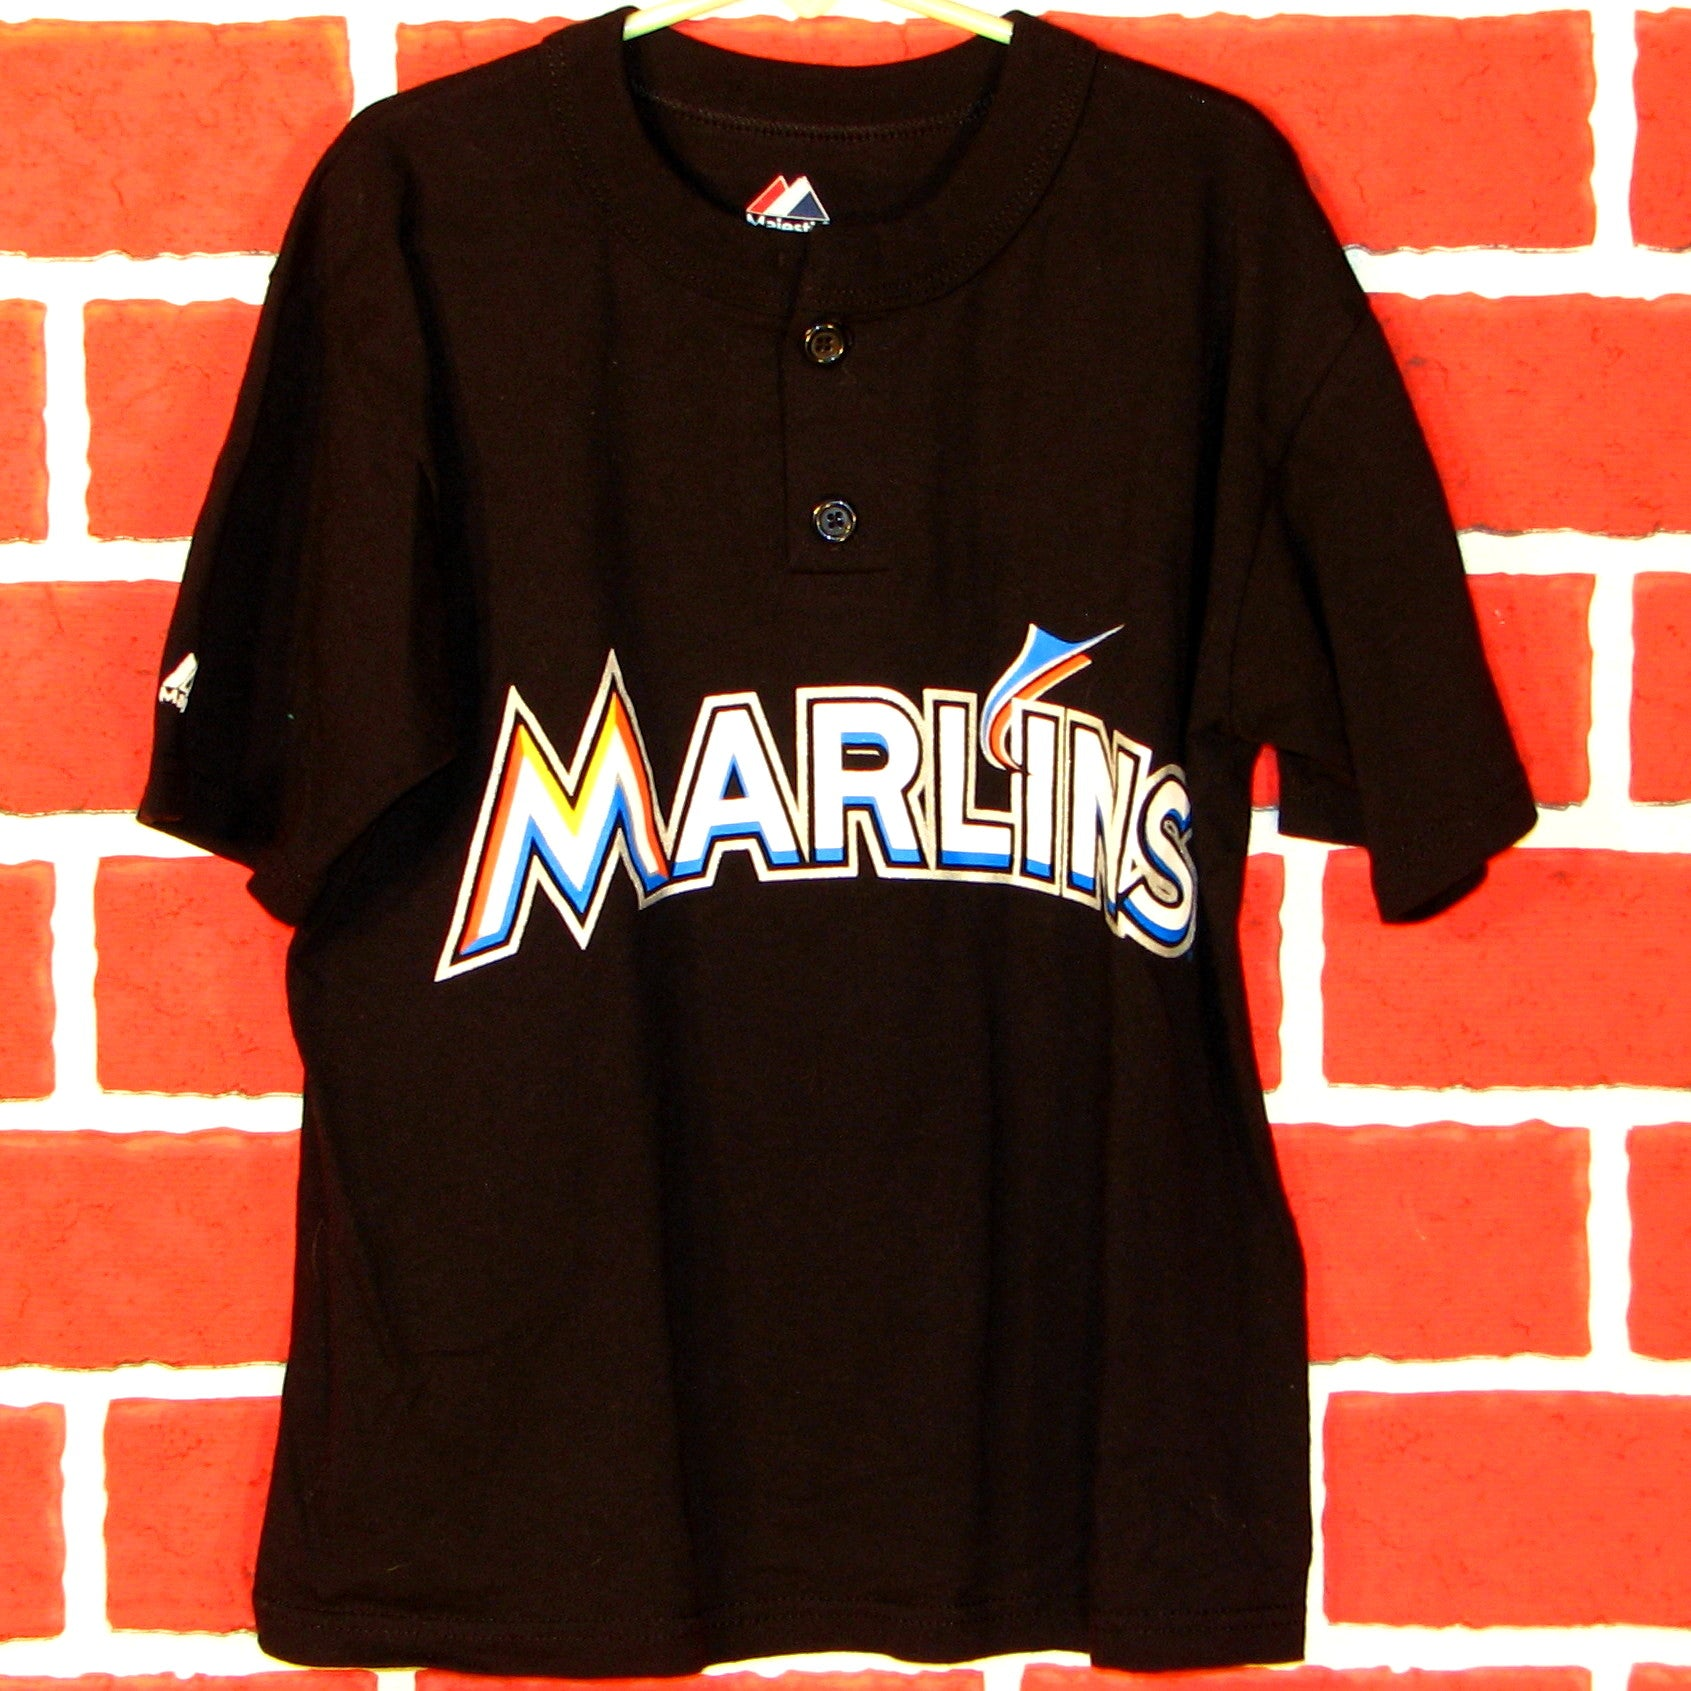 Miami Marlins Castillo # 1 Jersey Youth